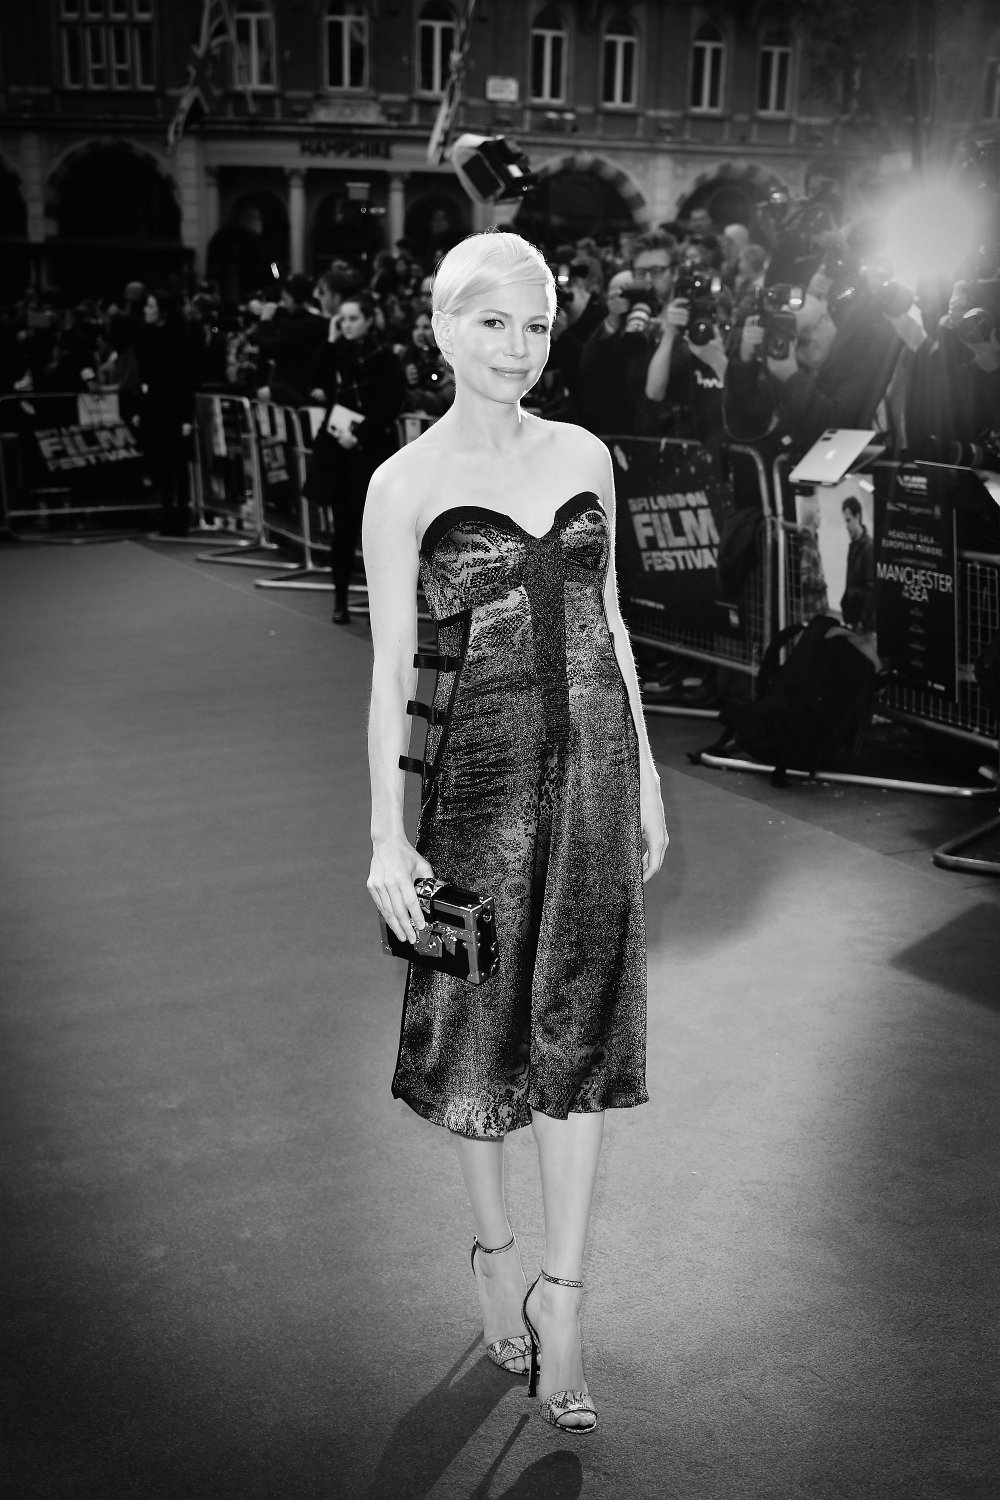 Michelle Williams attends the Manchester by the Sea premiere screening during the 60th BFI London Film Festival